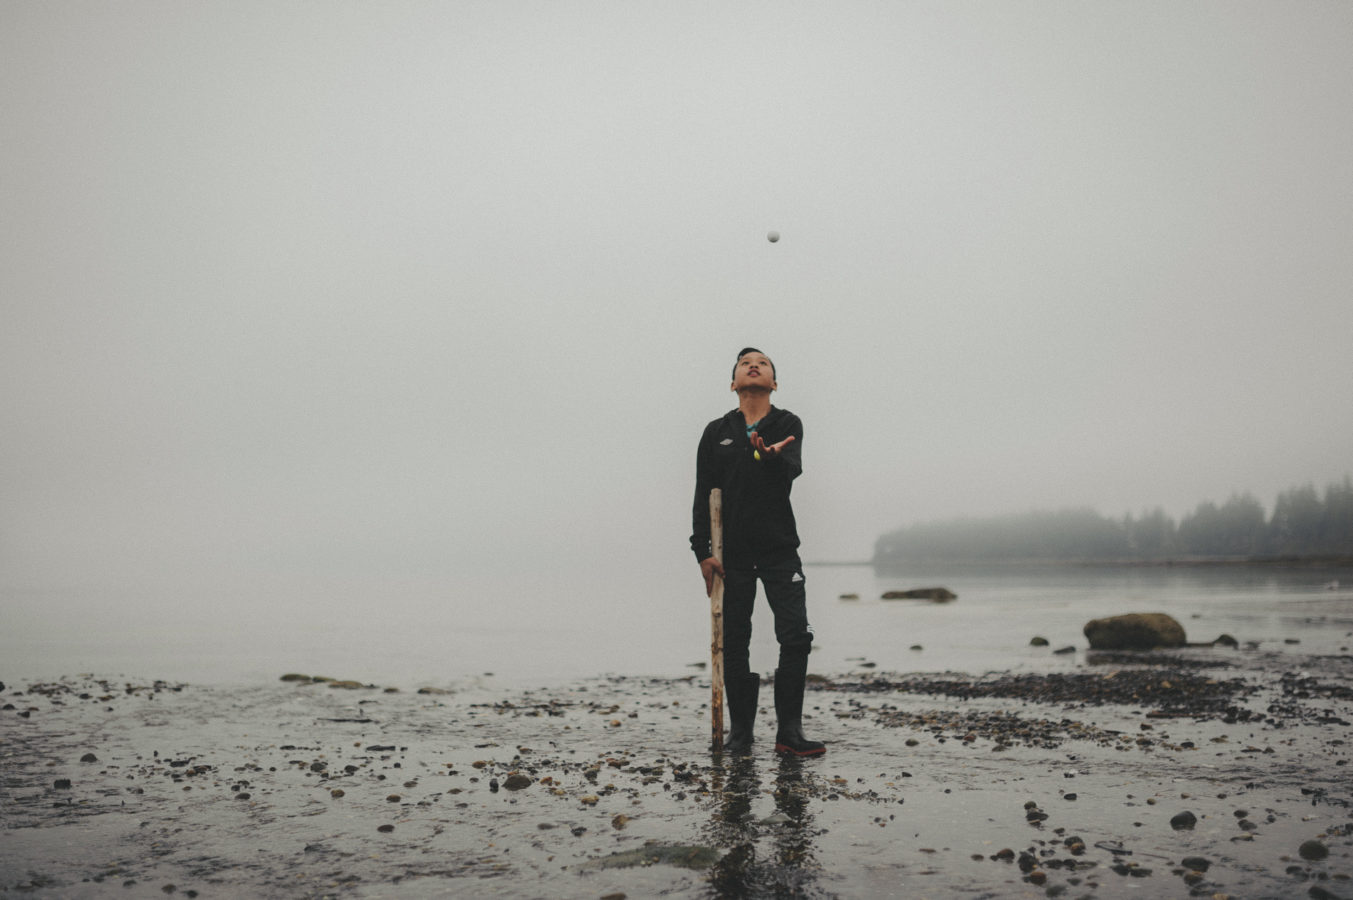 photo of a boy tossing a rock in the air on a foggy beach